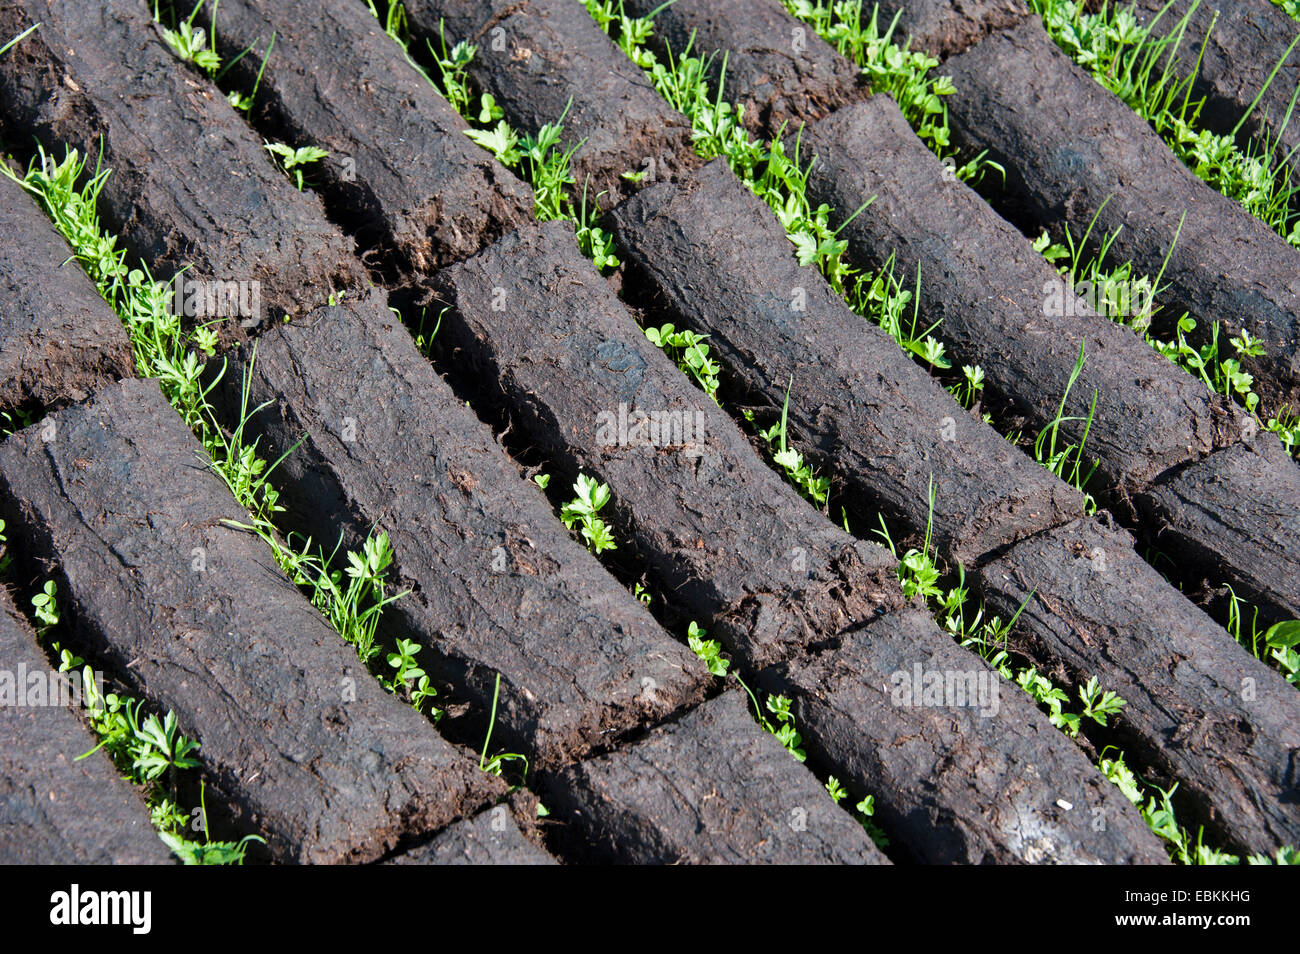 sods of peat, Germany, Lower Saxony, Wilhelmsfehn - Stock Image